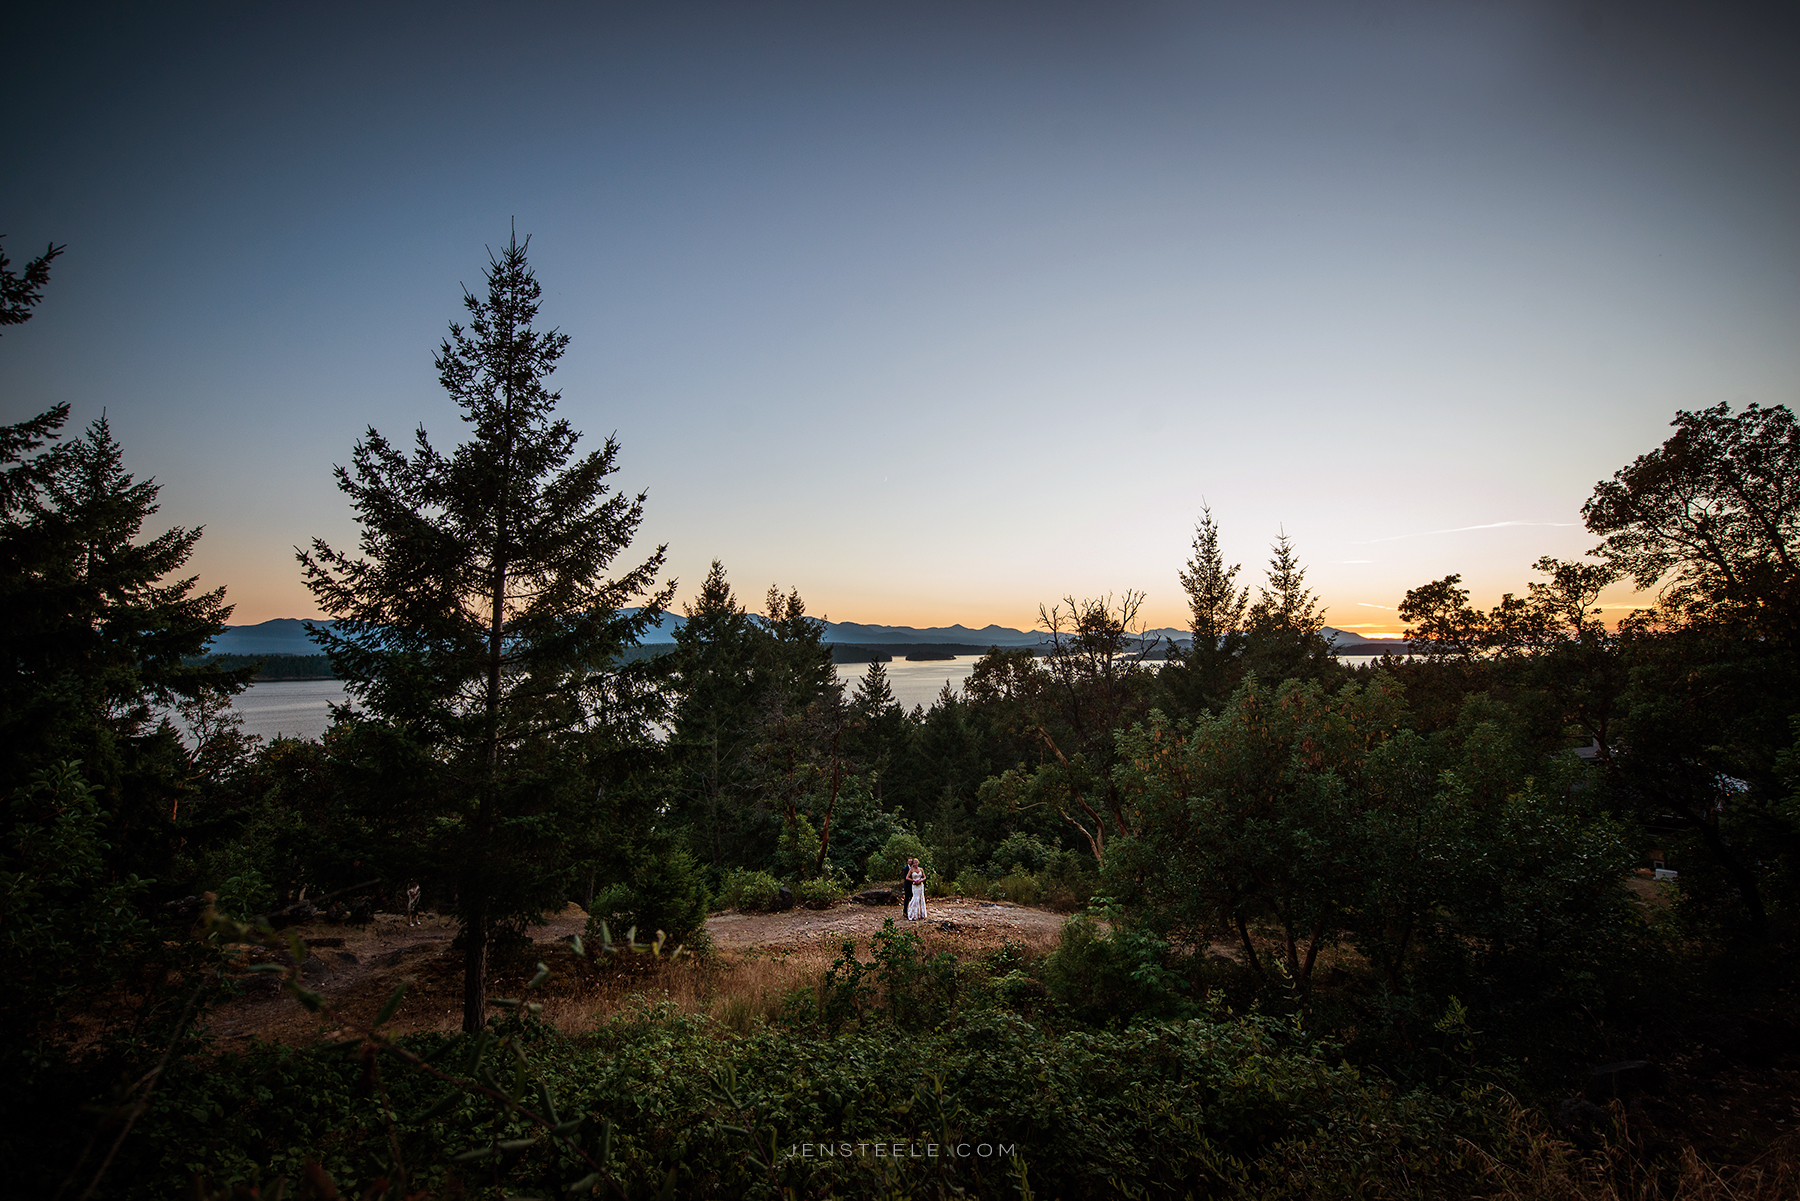 ISLANDWeddings_bodega-ridge_JenSteelePhotography